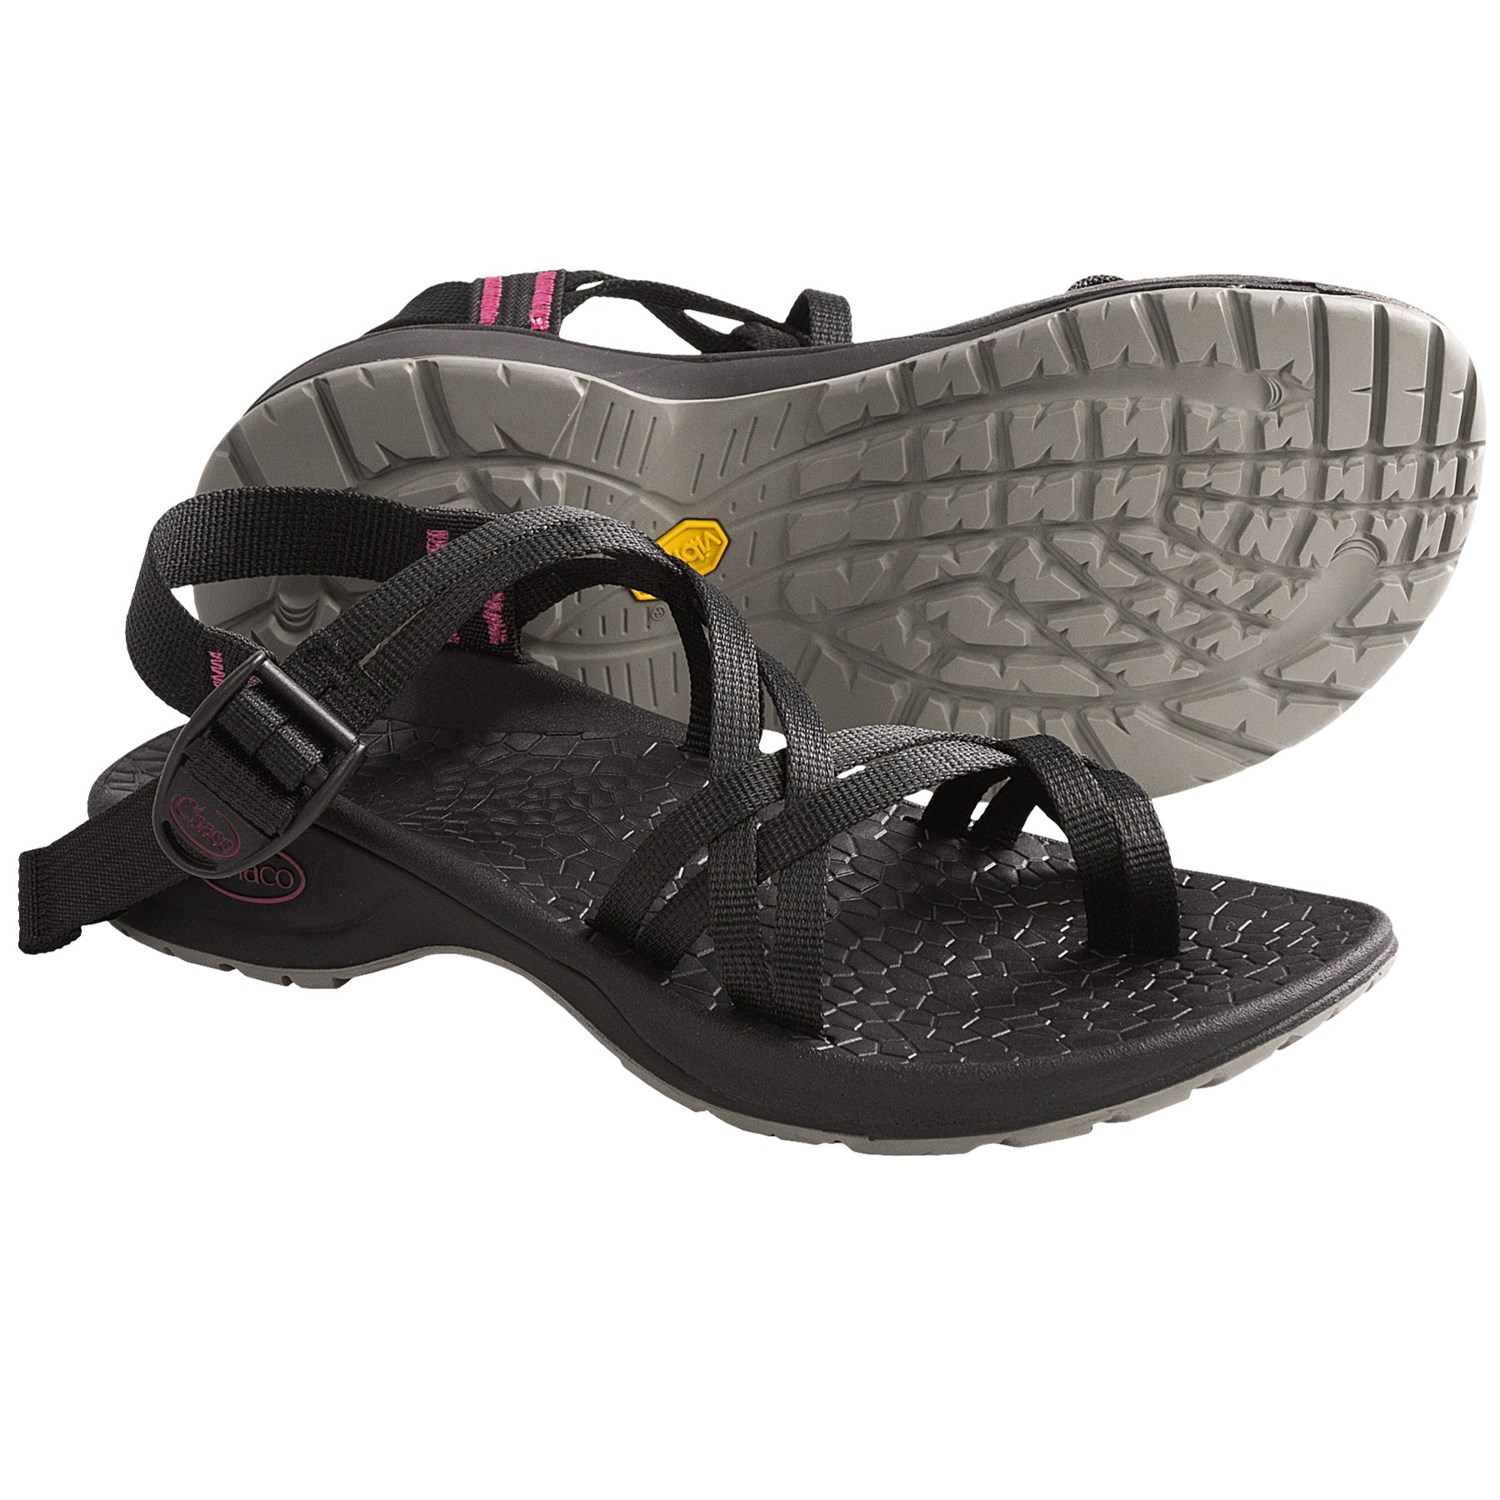 Chacos Updraft X2 Impr...W Onlineshoes Returns